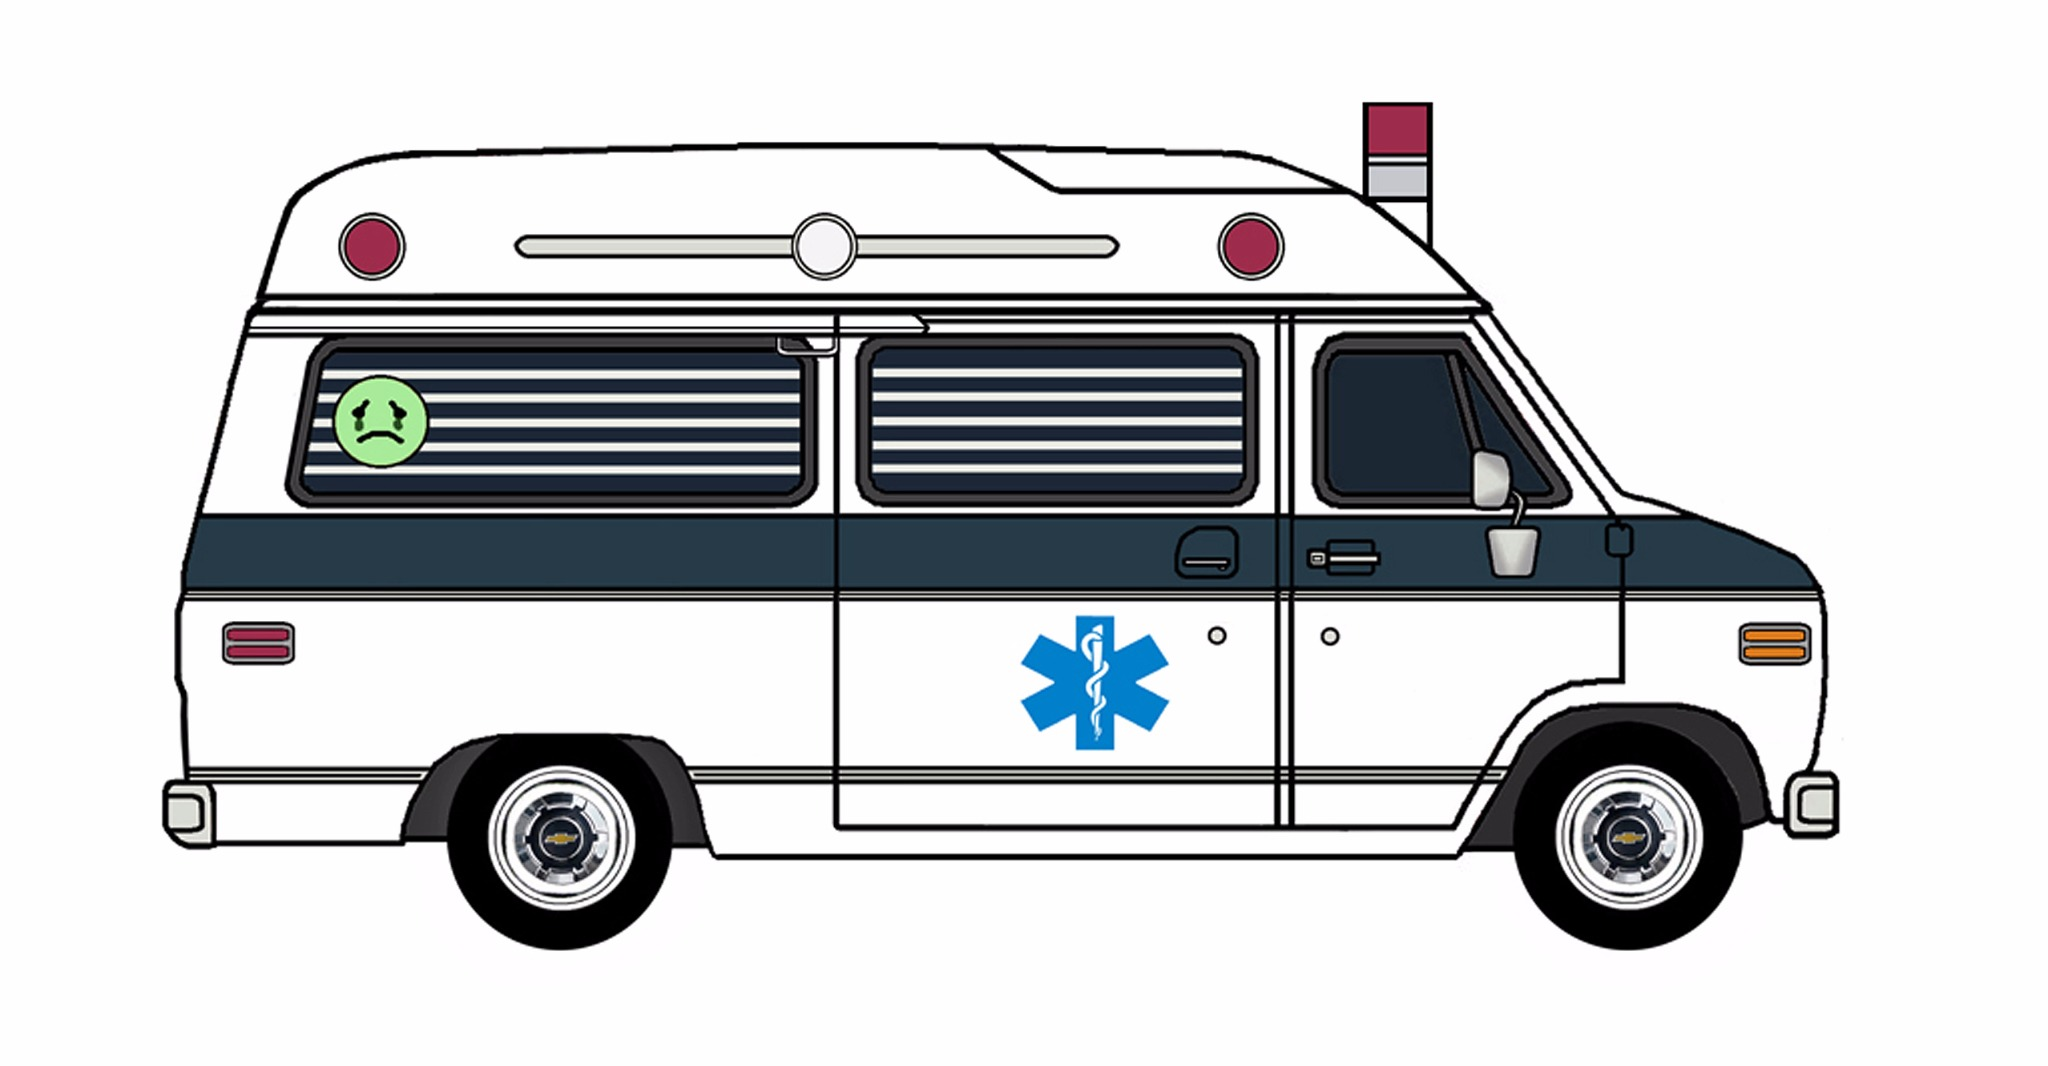 1977 Chevy G20 Ambulance WHITE & NAVY BLUE